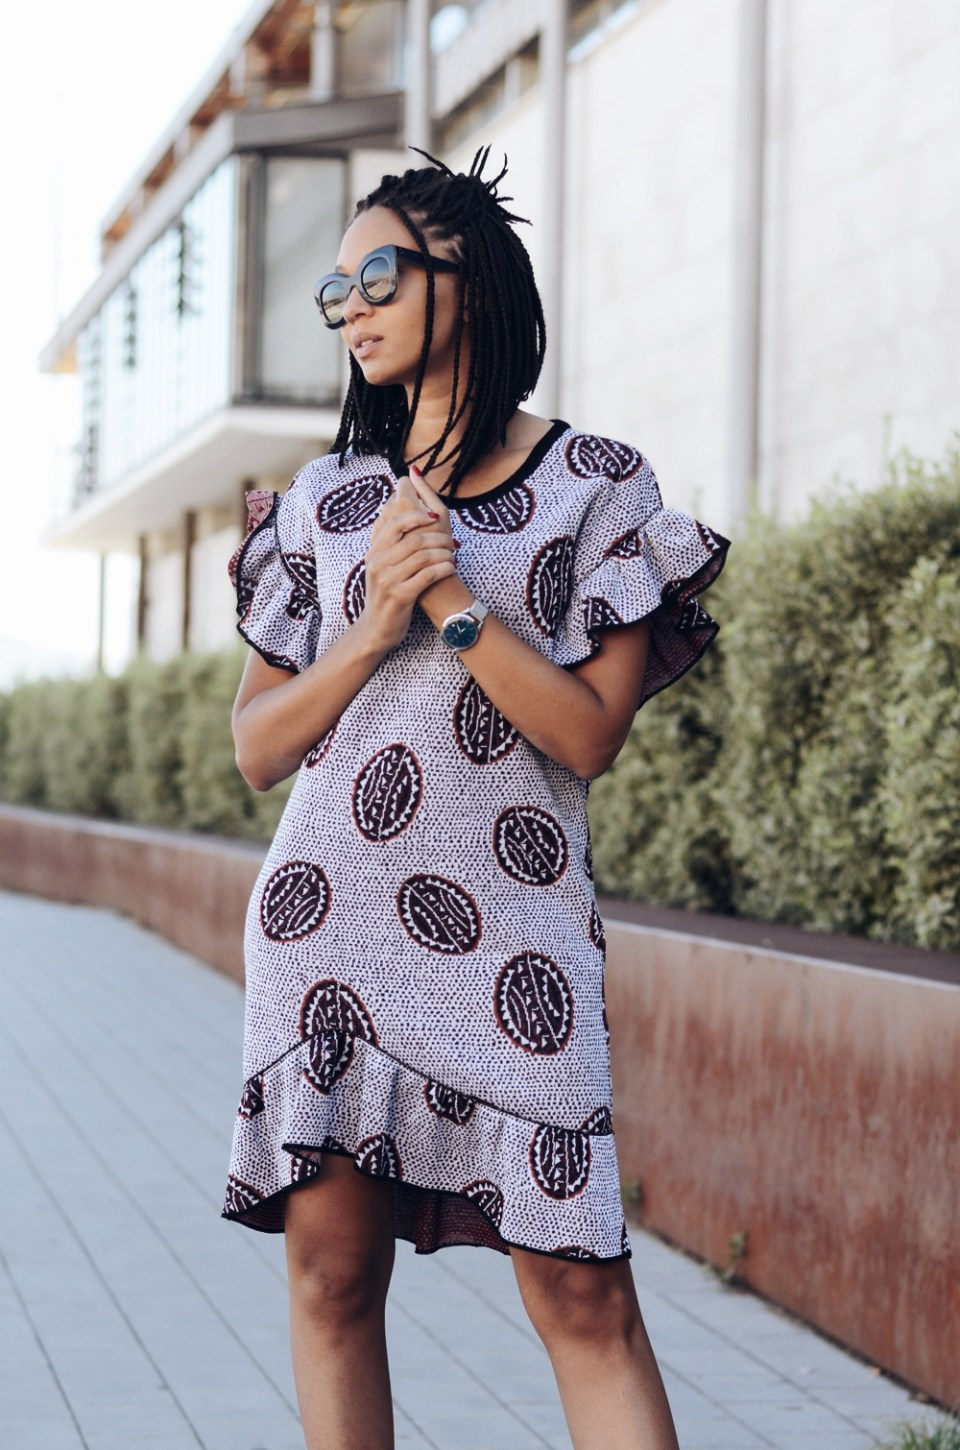 mercredie-blog-mode-fashion-blogger-geneva-suisse-blogueuse-bloggeuse-knightsbridge-montre-henry-london-robe-bimba-y-lola-irregular-tribe-celine-marta-41093S-lunettes-shades-sunglasses